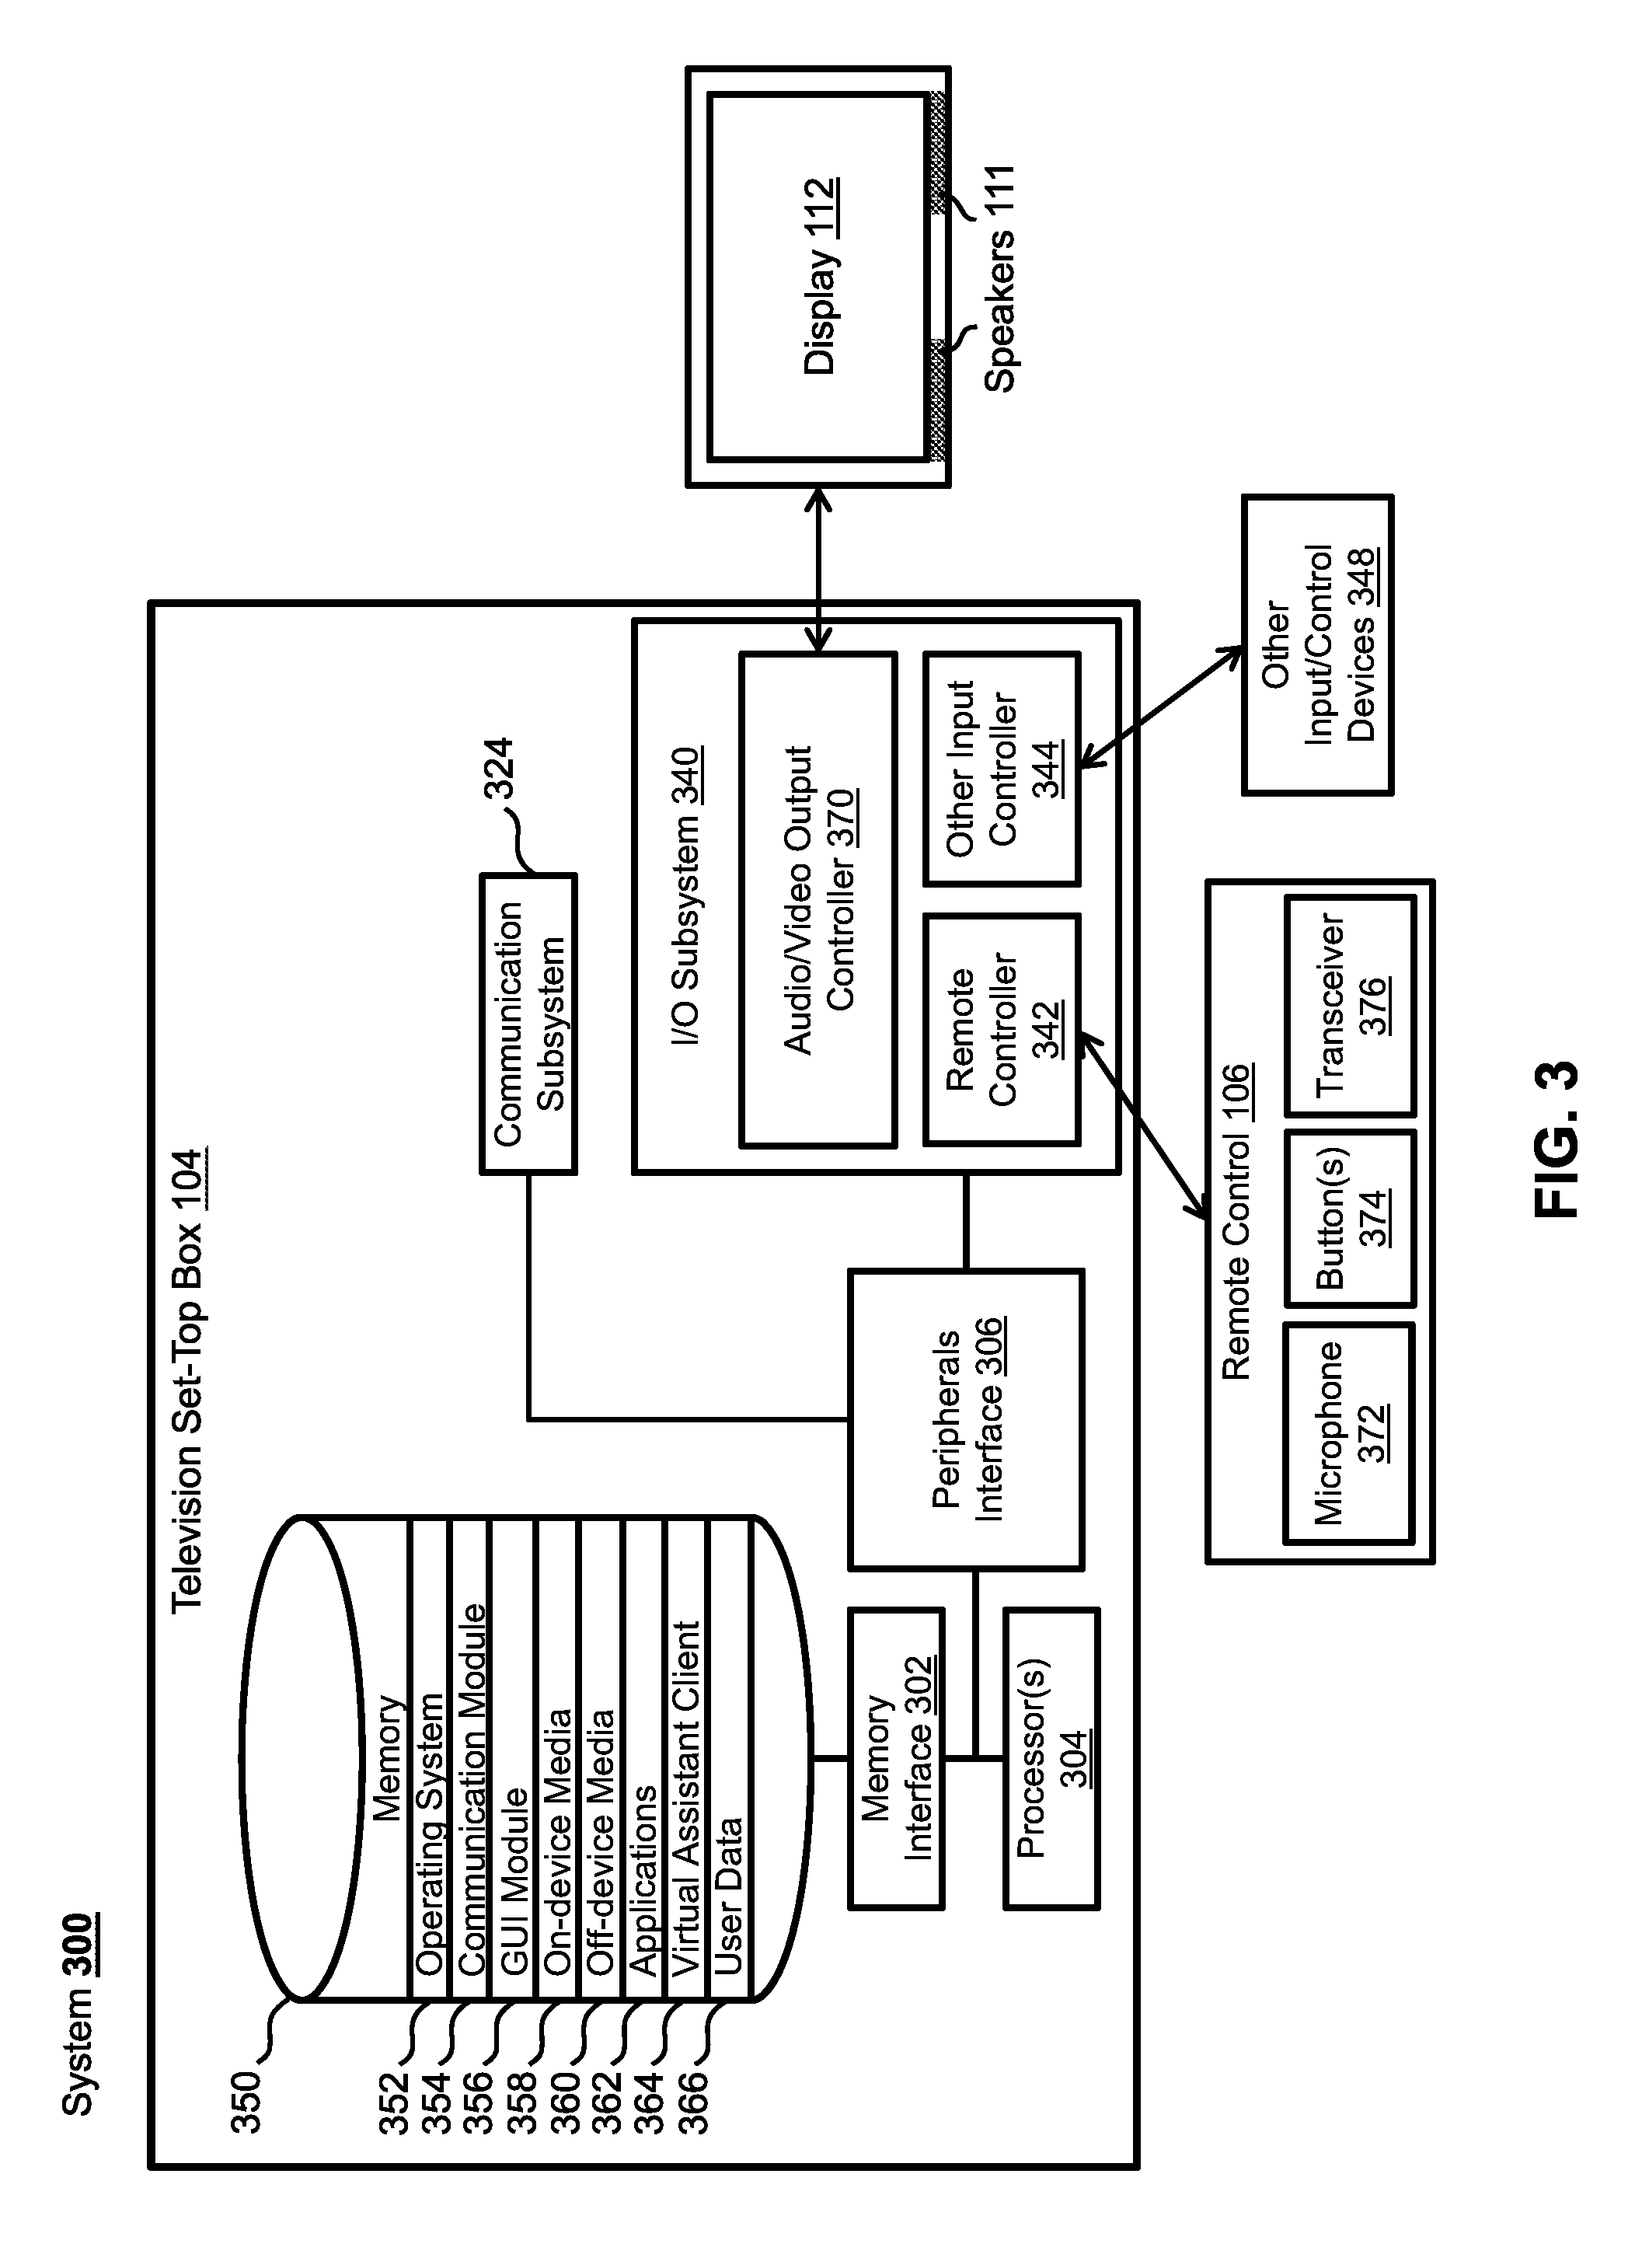 Patent Us 9338493 B2 Diagram This Is A Circuit Of The Ups Subsystem